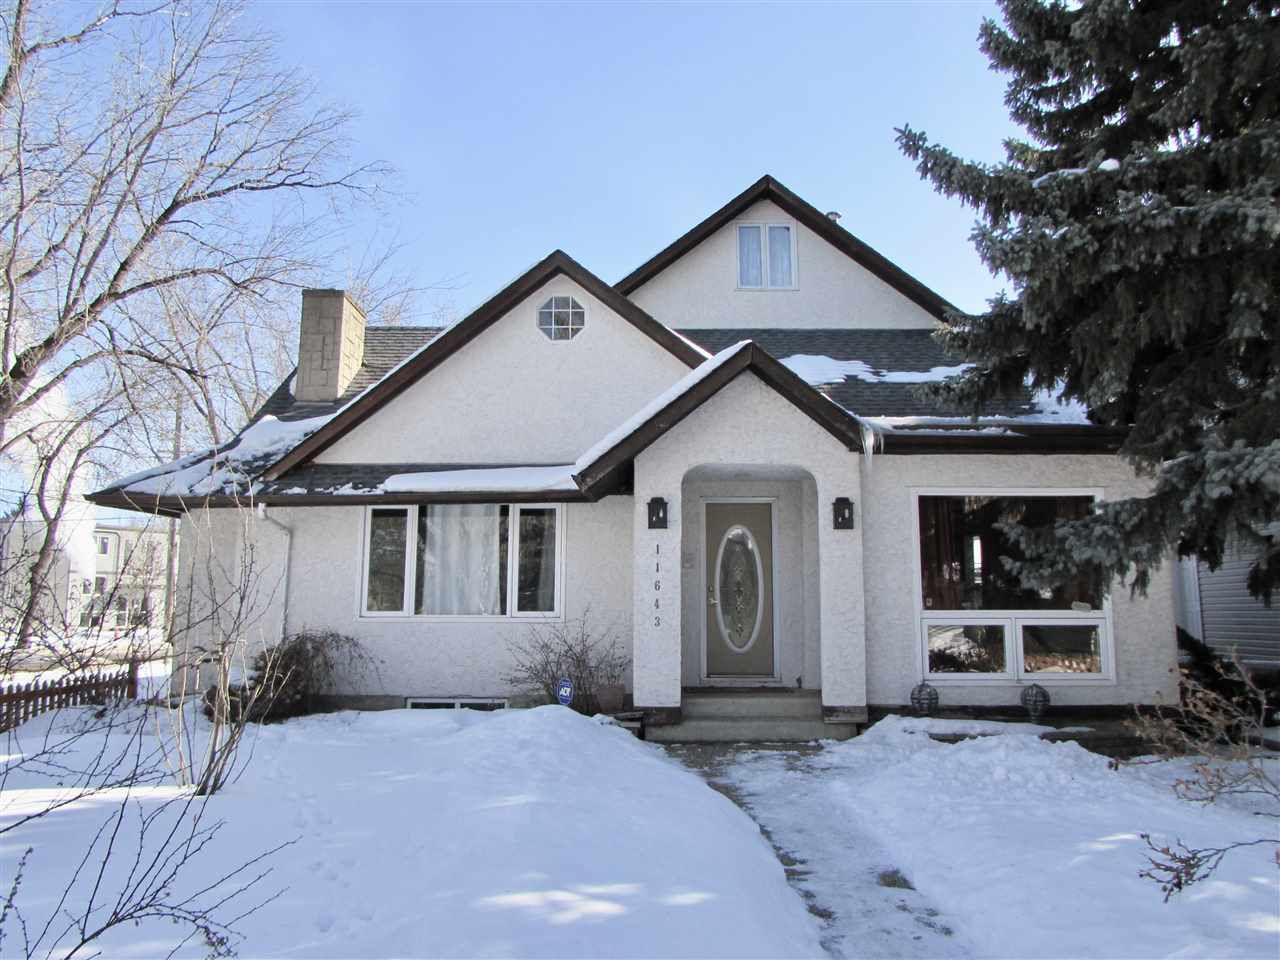 Main Photo: 11643 128 Street in Edmonton: Zone 07 House for sale : MLS®# E4141845